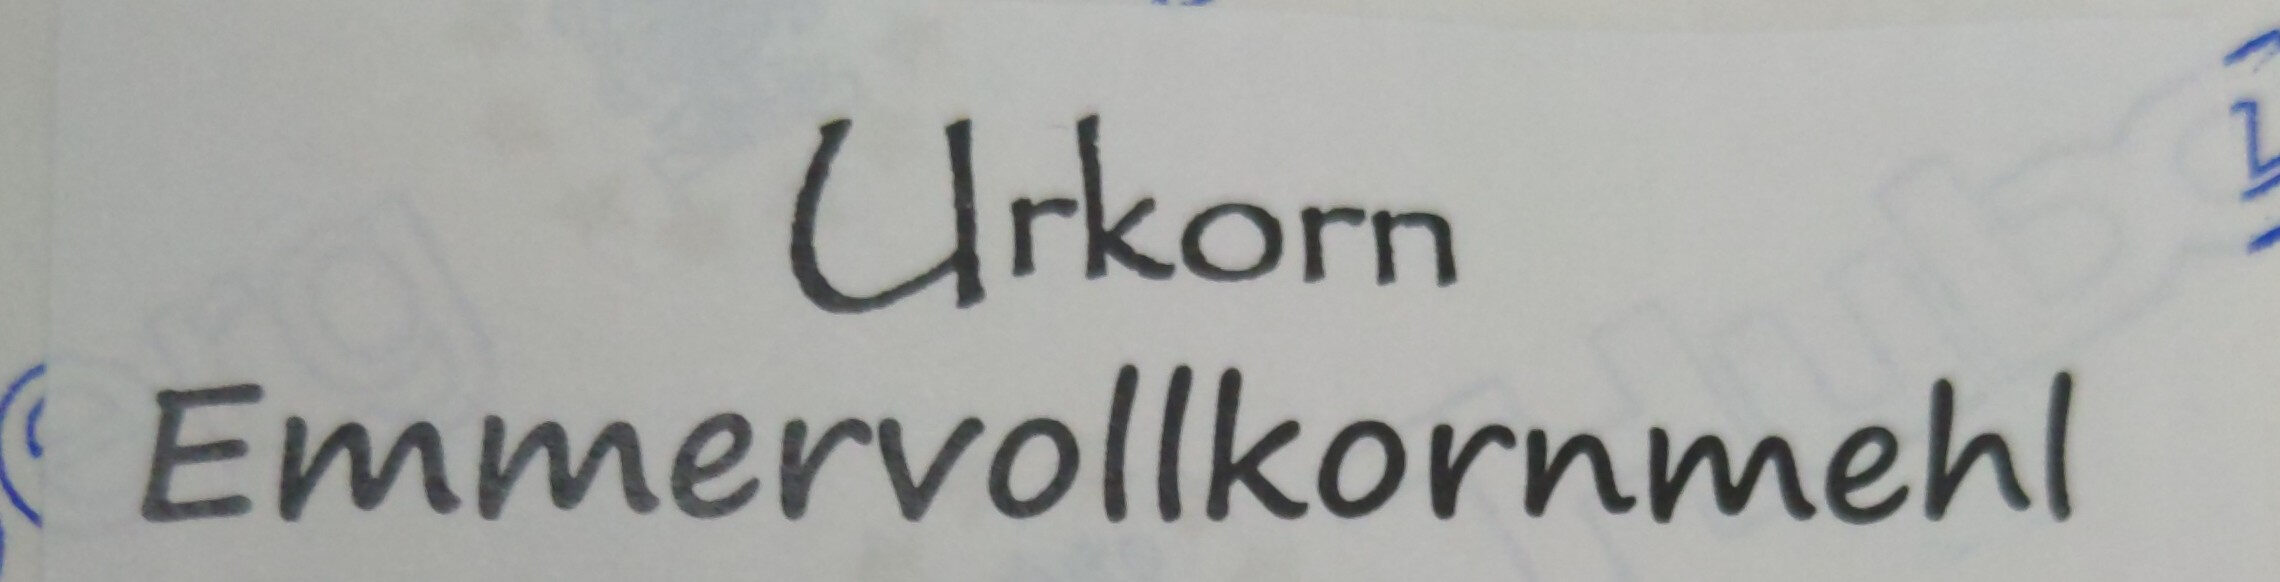 urkorn emmervollkornmehl - Ingredients - en